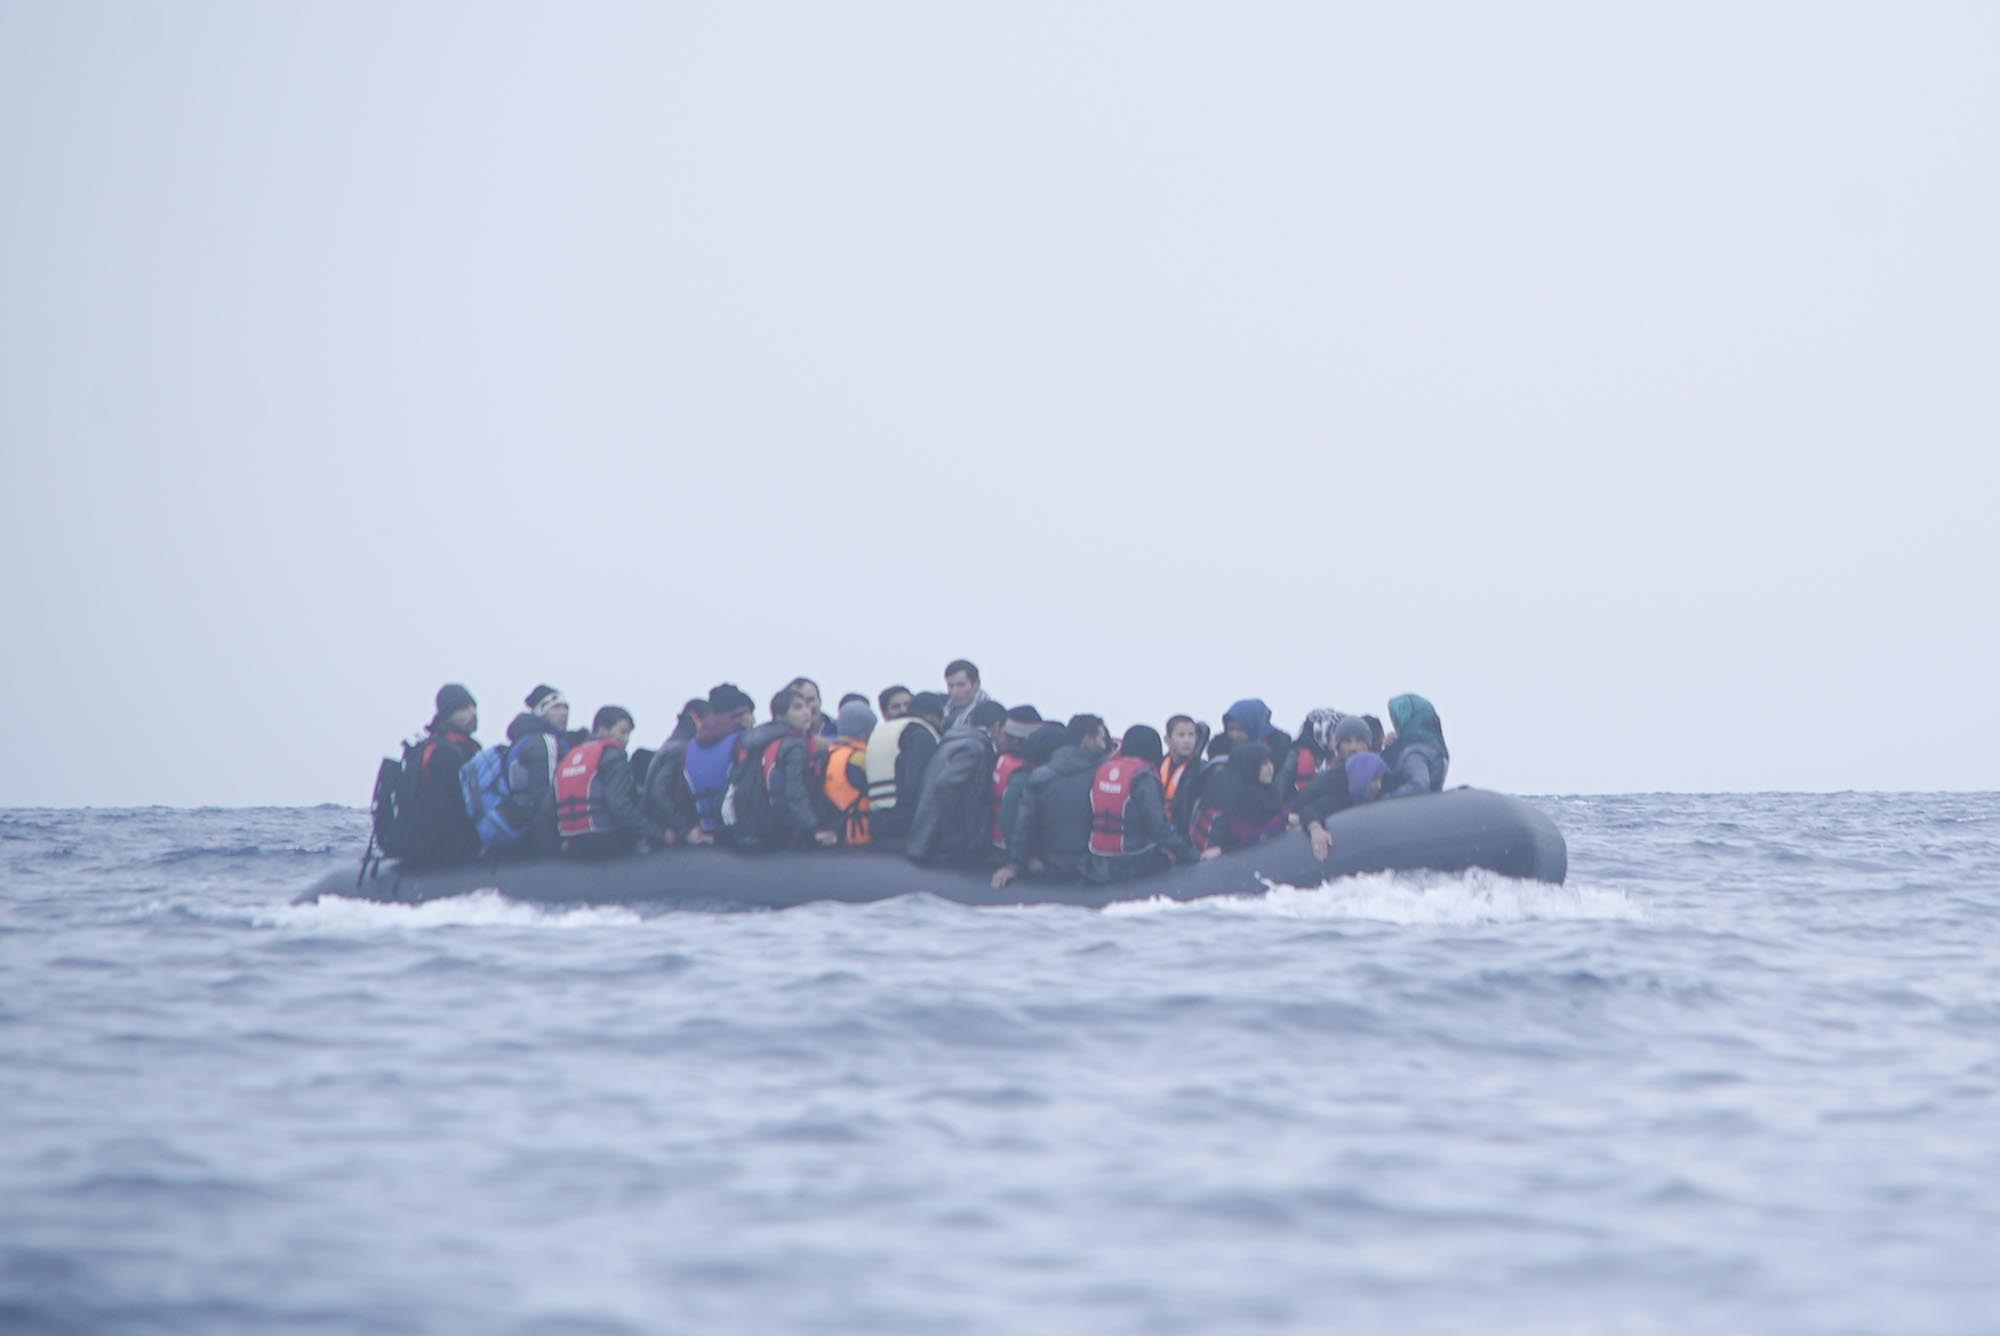 One-third of asylum seekers and refugees show clinically relevant psychological distress, according to scientists. Image credit - Mstyslav Chernov/Unframe/ Wikipedia licensed under CC BY SA 4.0